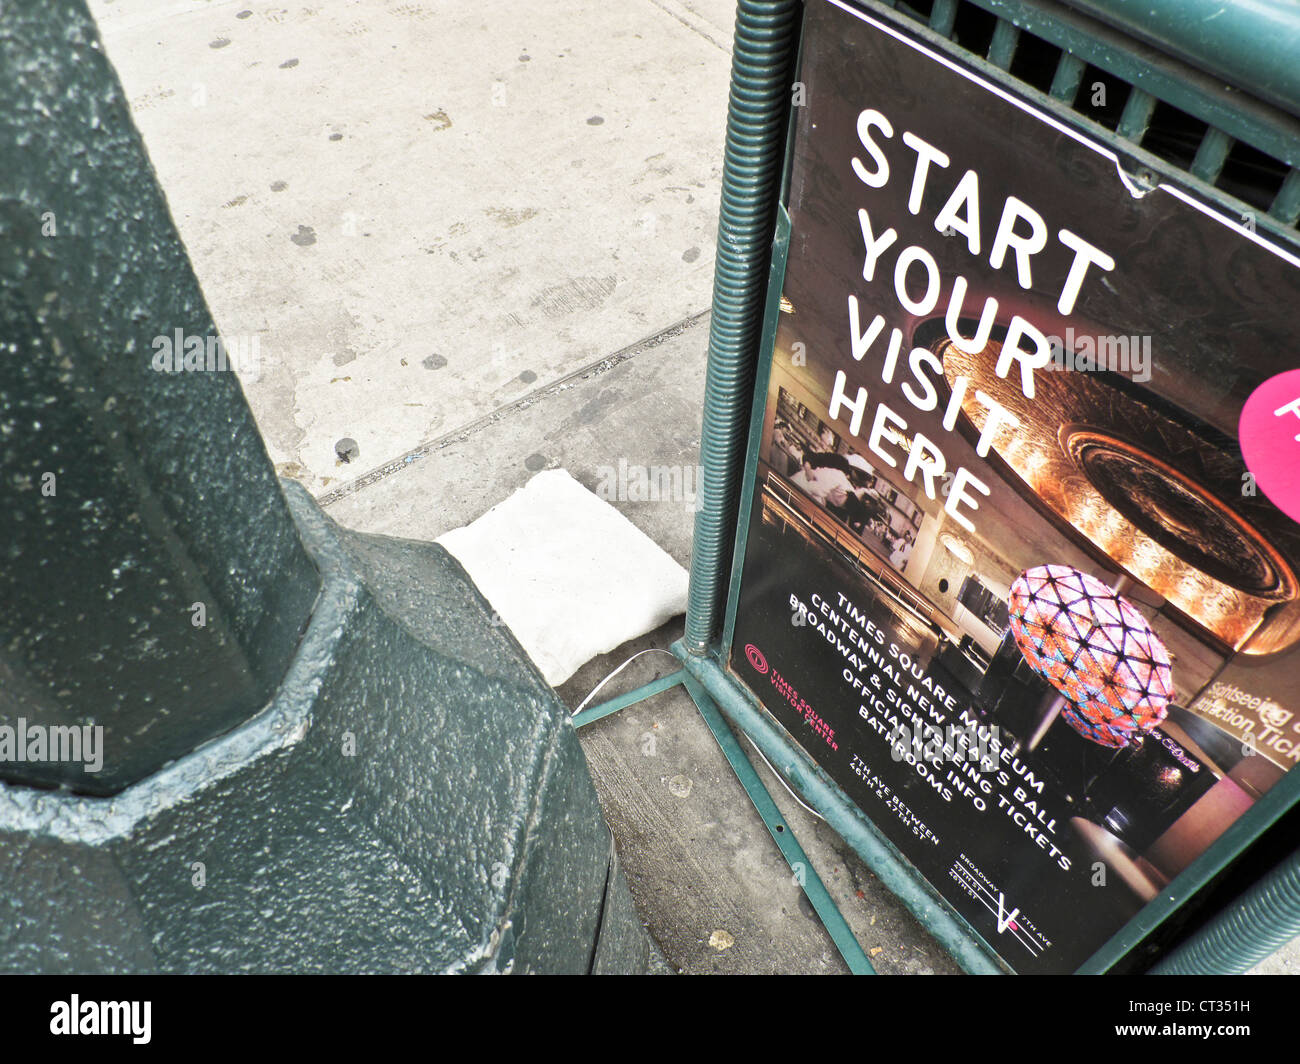 Near to times square stock photos near to times square stock images alamy - Tourist office new york city ...